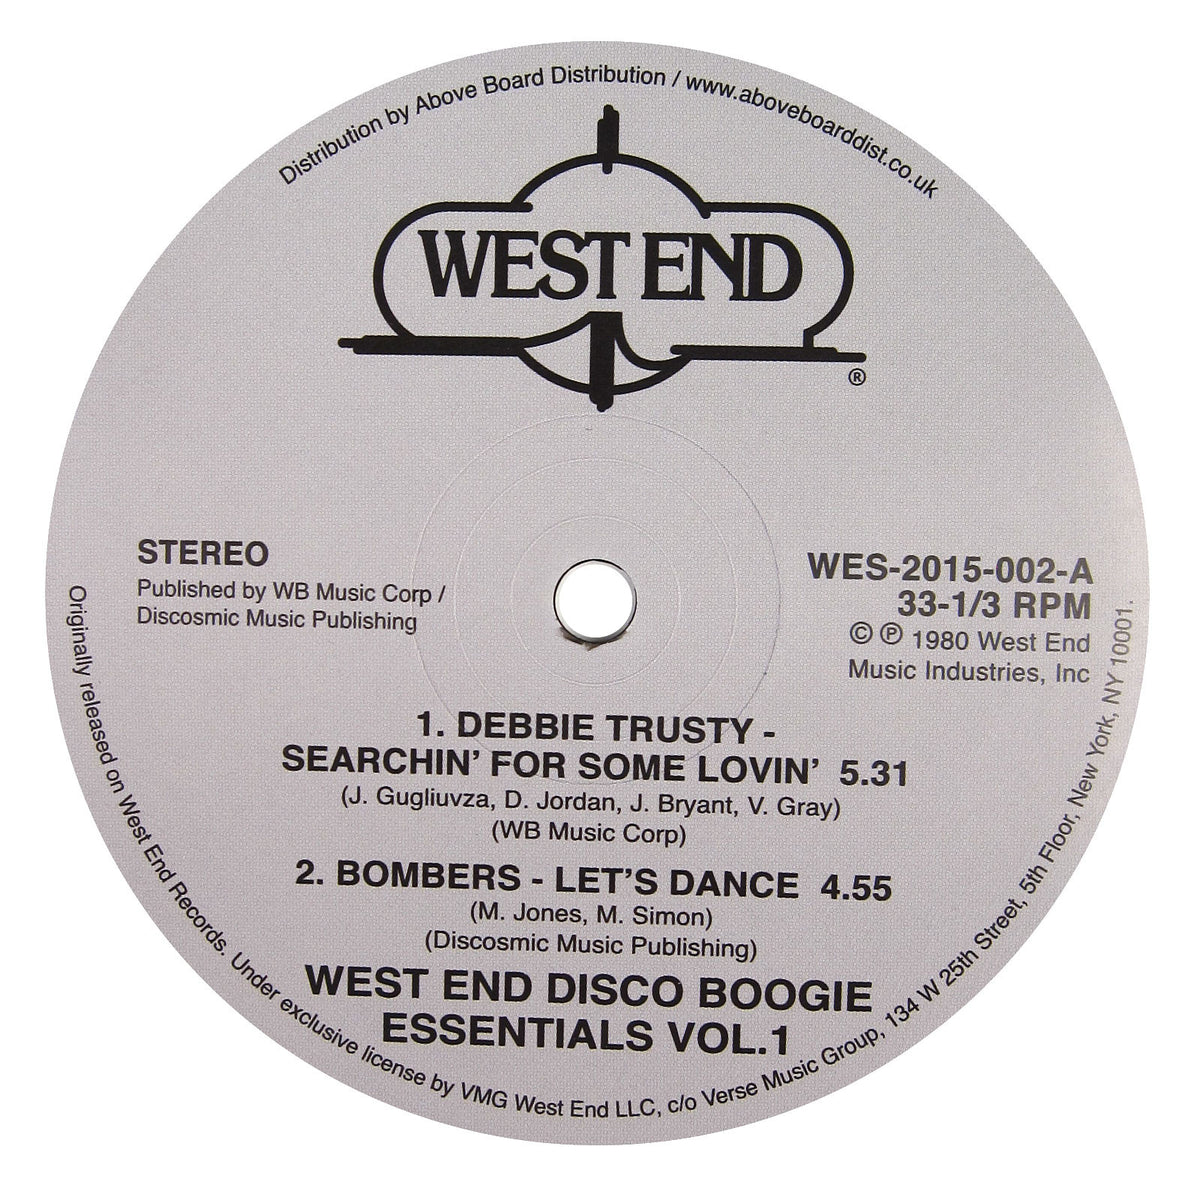 West End Records: Boogie Essentials Vol.1 (Bombers, Edna Holt) Vinyl 12""